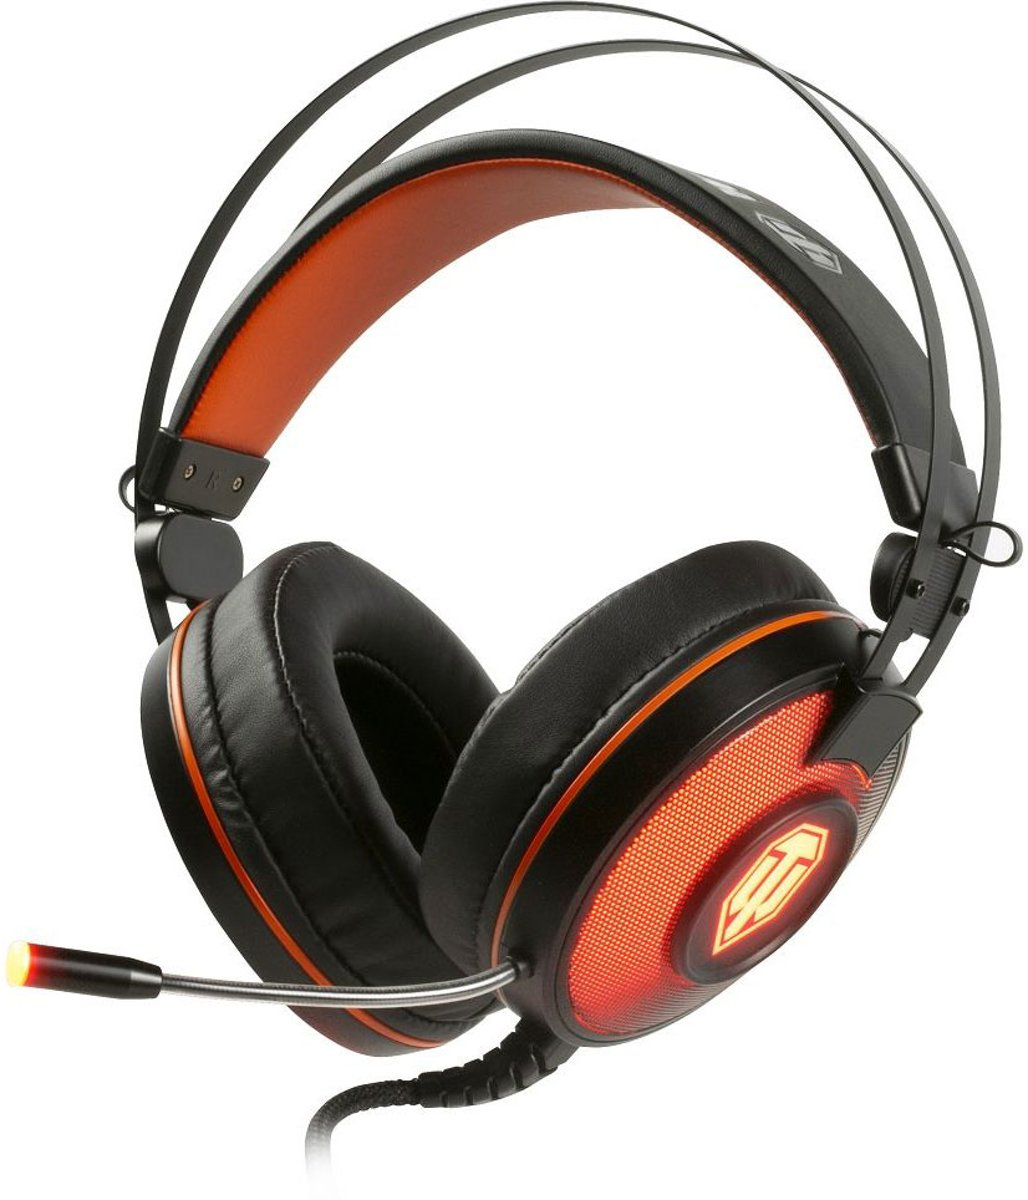 World of Tanks GH-40 7.1 Gaming Headset